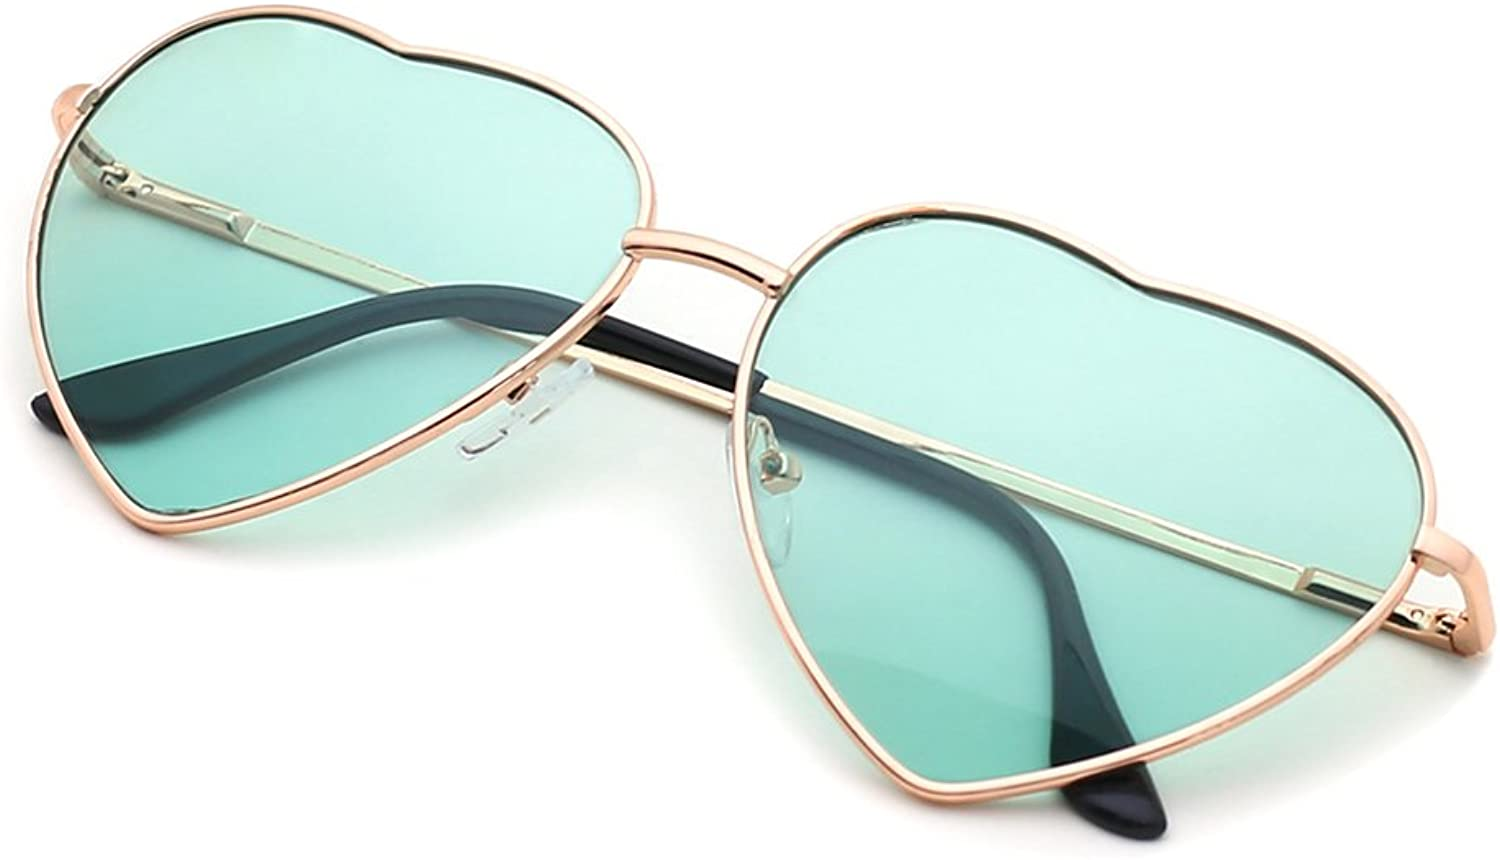 Slocyclub Stylish Metal Heartshaped Frame Sunglasses UV400 Predection for Women